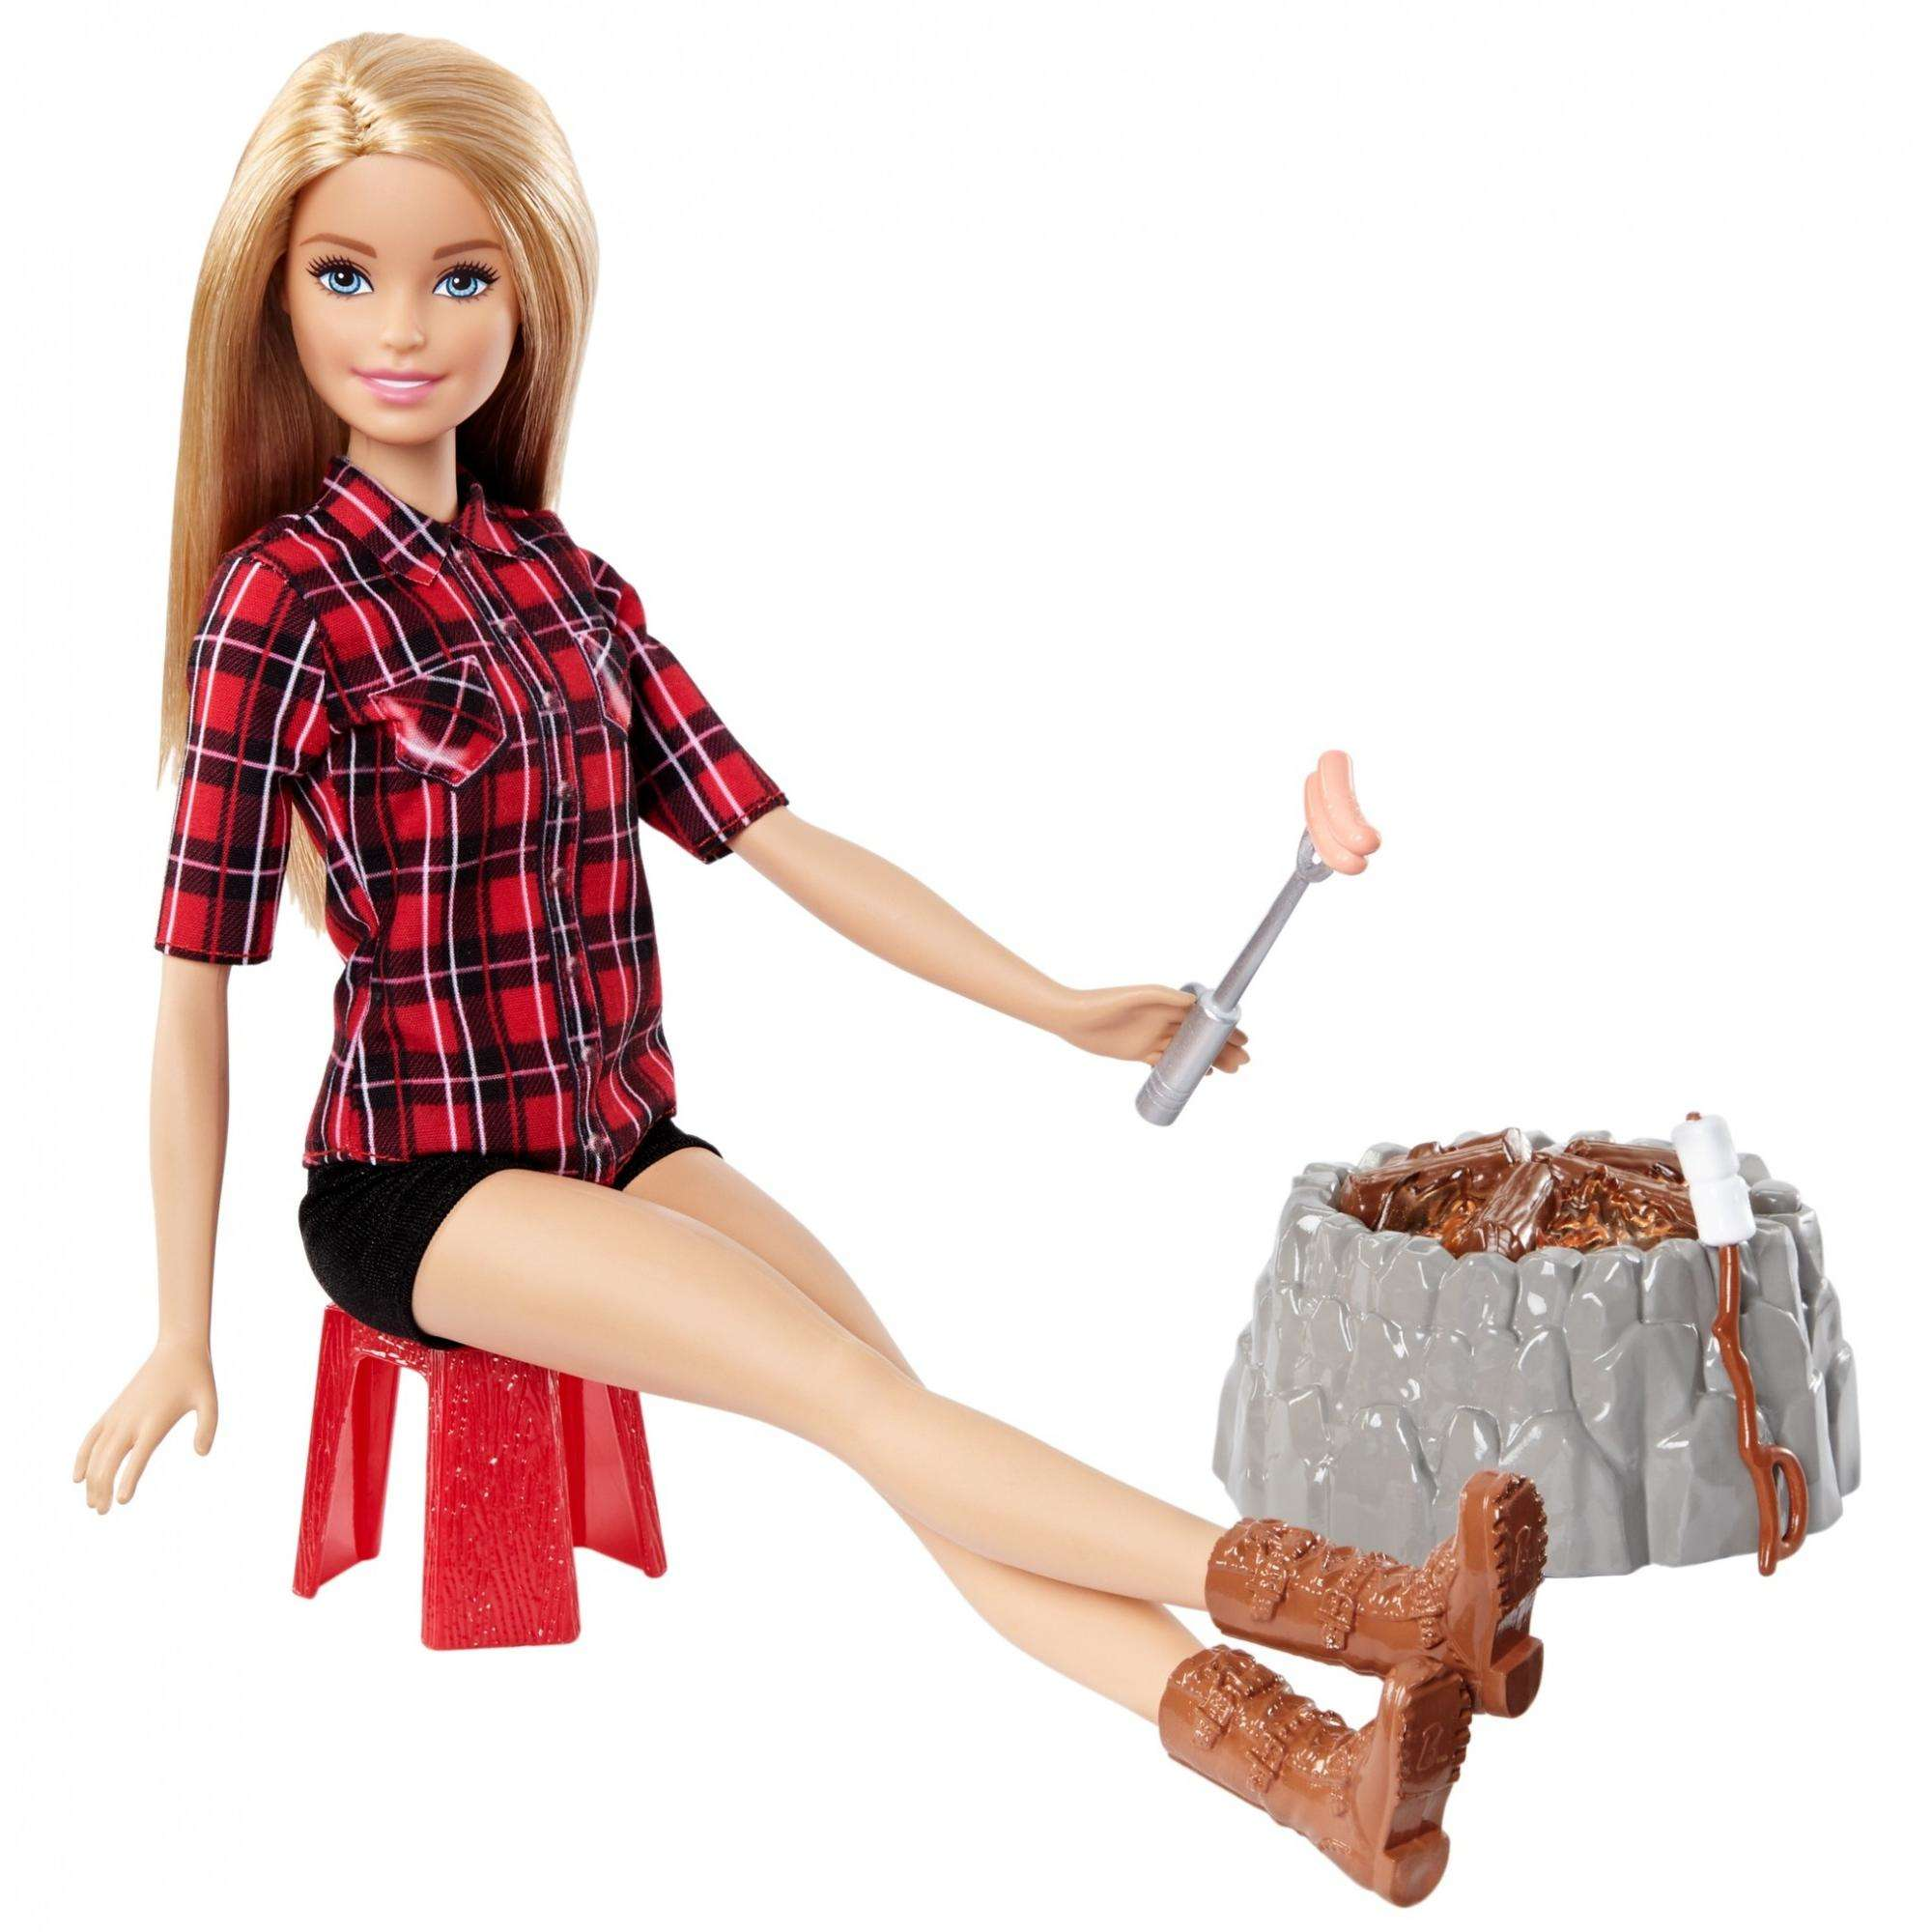 Barbie Sisters Campfire Doll by Mattel